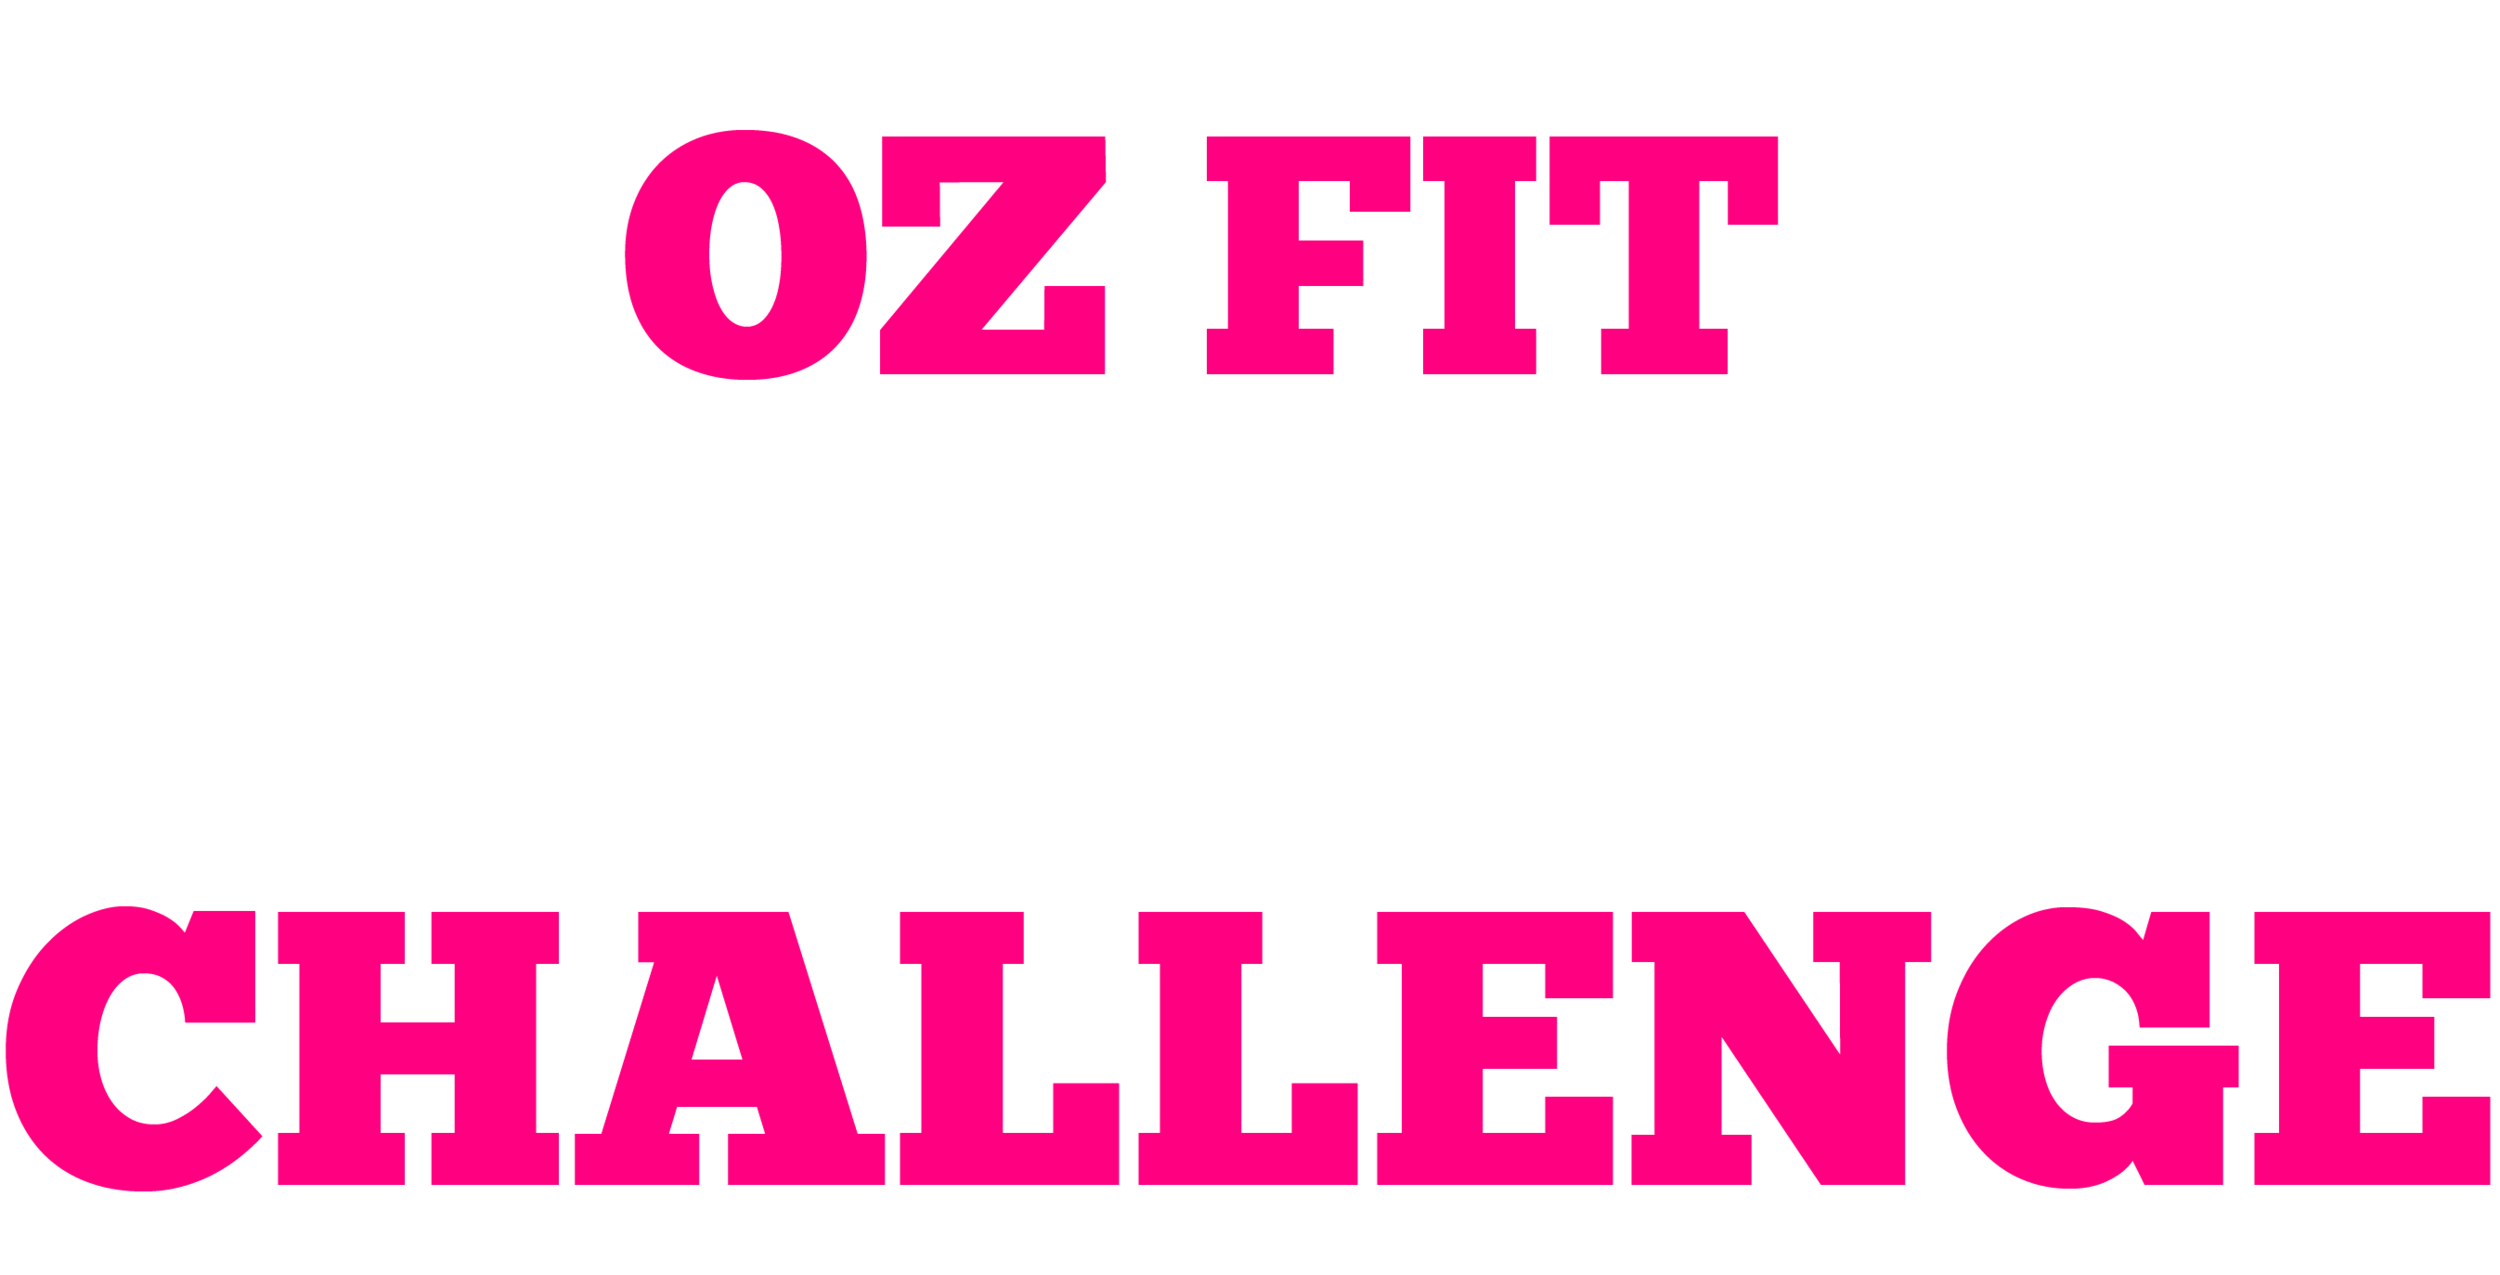 Ozfit 9week (1).png